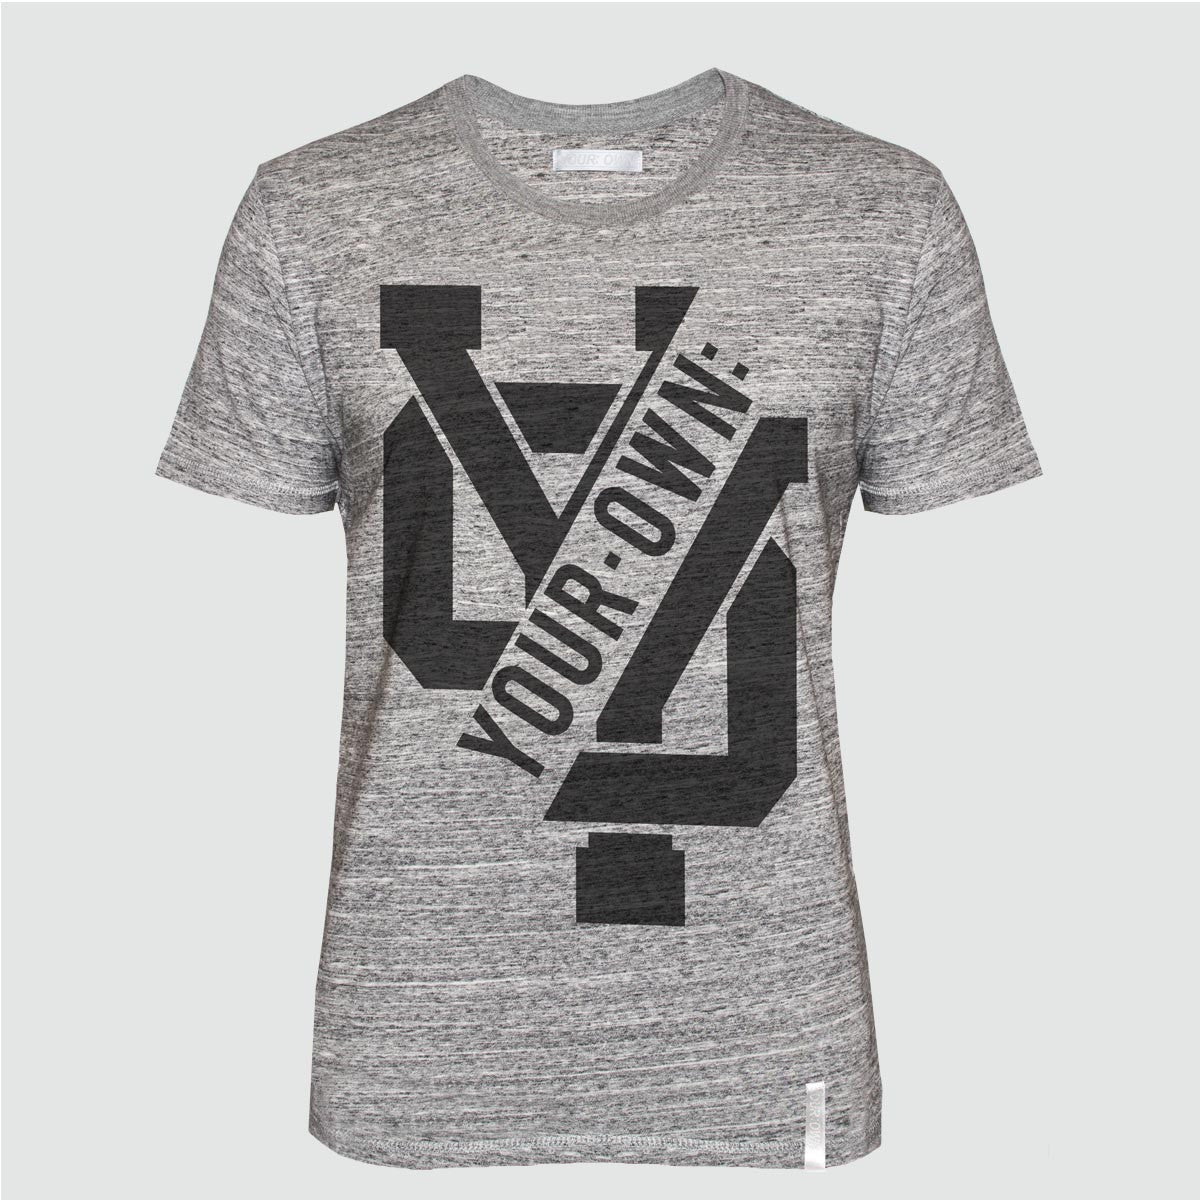 YO 'CAN FORN' T SHIRT GREY MARL